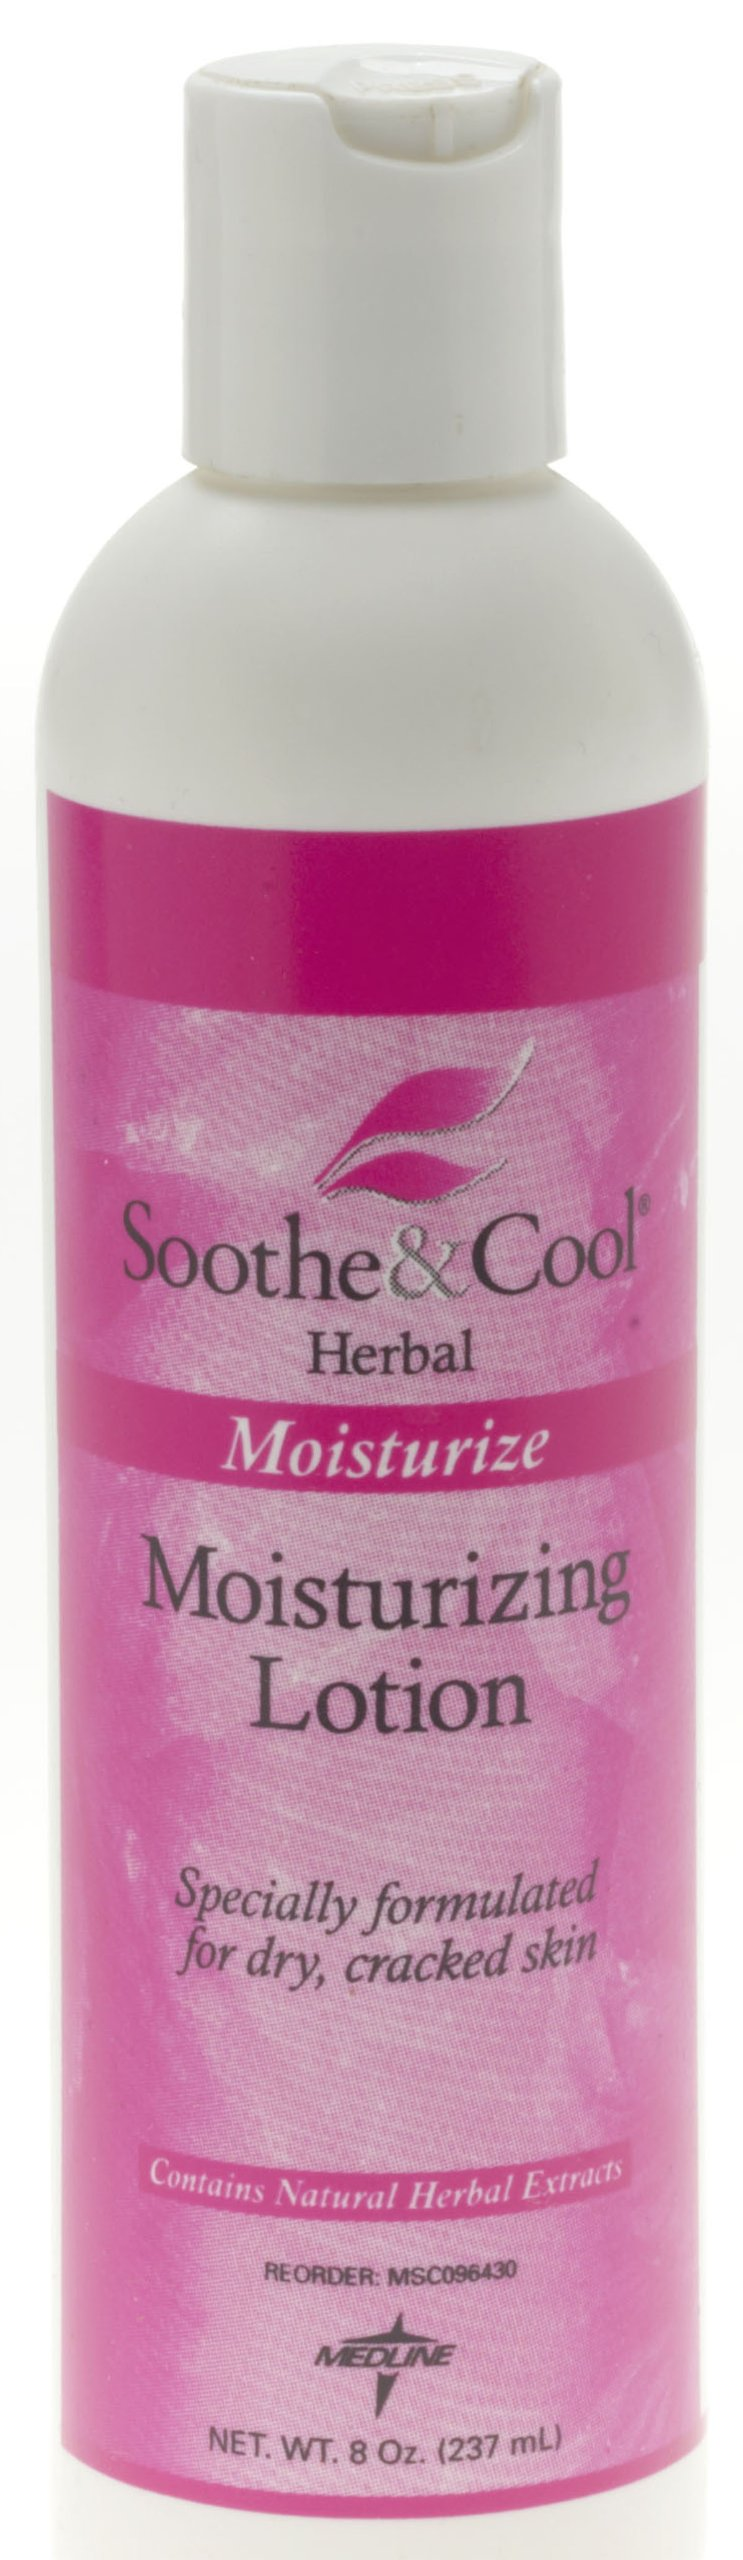 Medline MSC096435 Soothe & Cool Herbal Body Lotion, White (Case of 60)